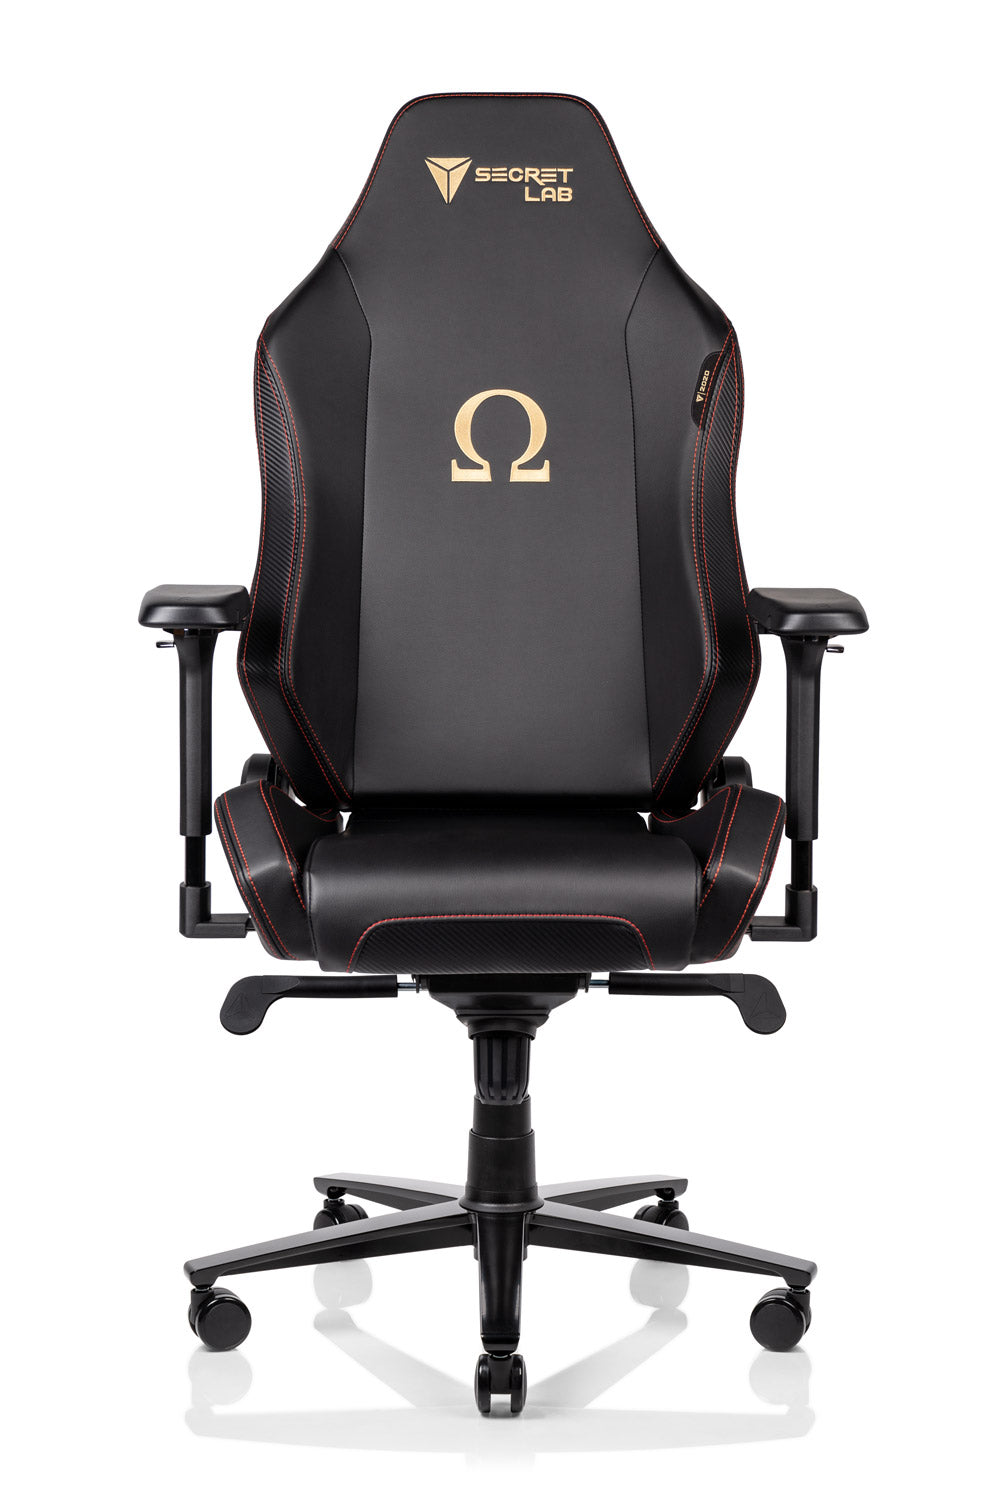 best gaming chairs 2020 OMEGA Series gaming chairs | Secretlab US